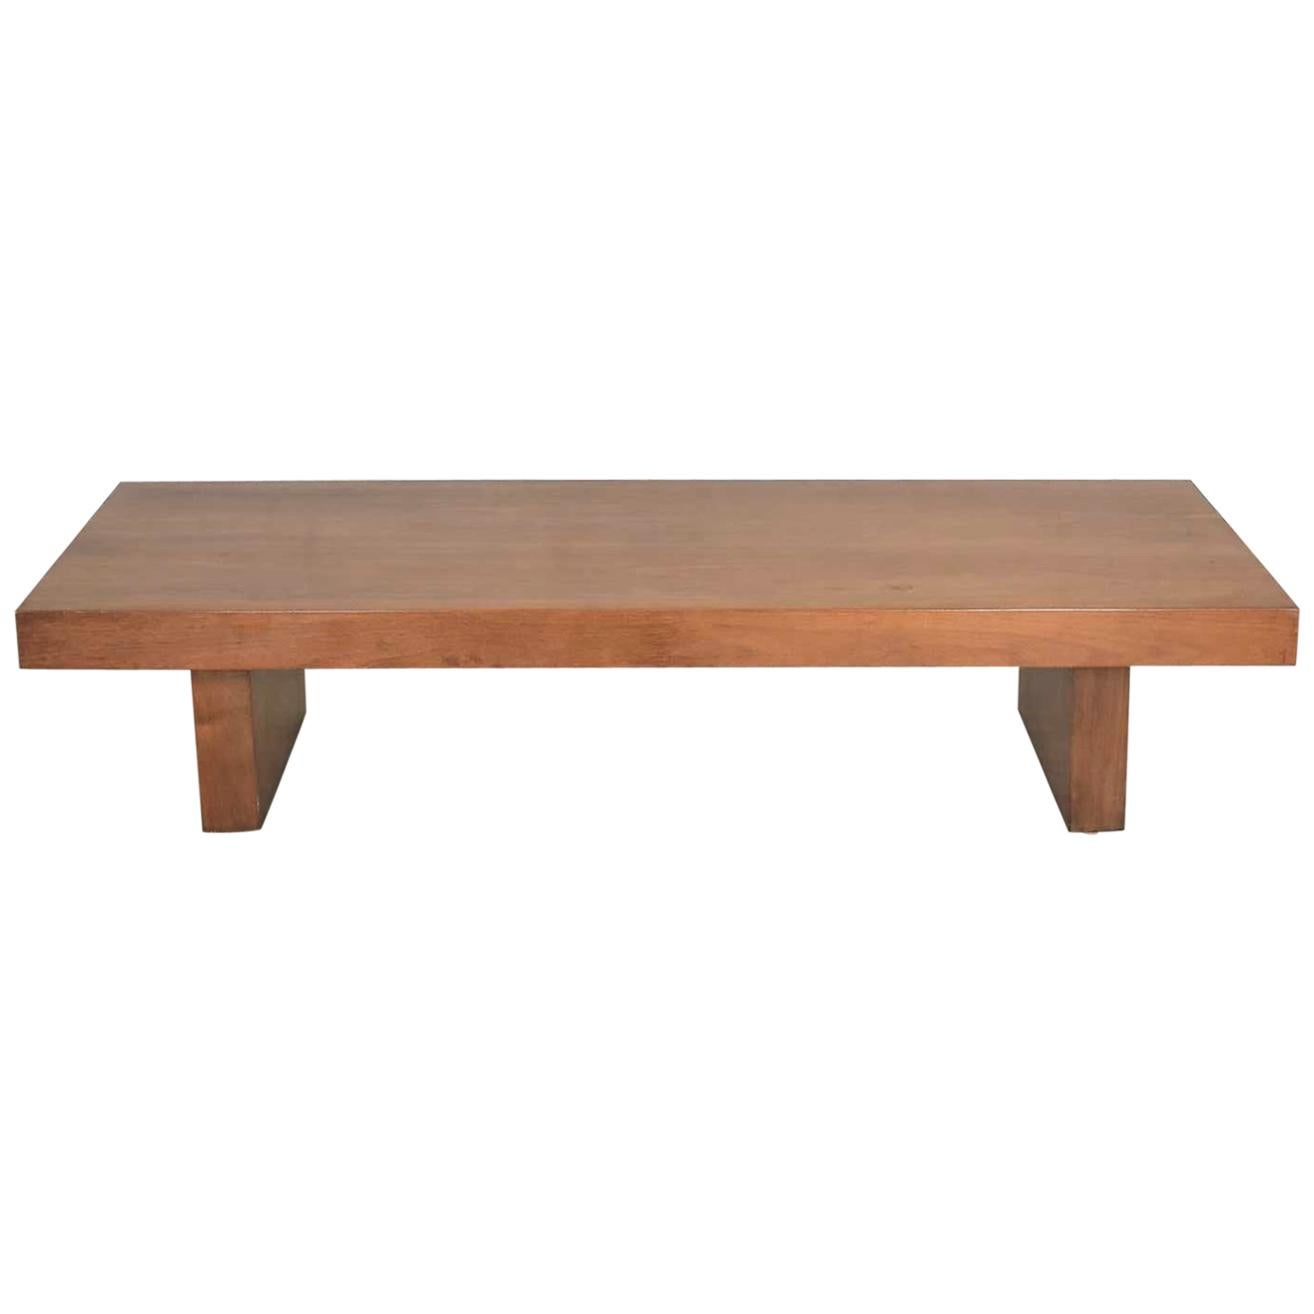 show pieces mid century modern asian low coffee teahouse table bench in walnut